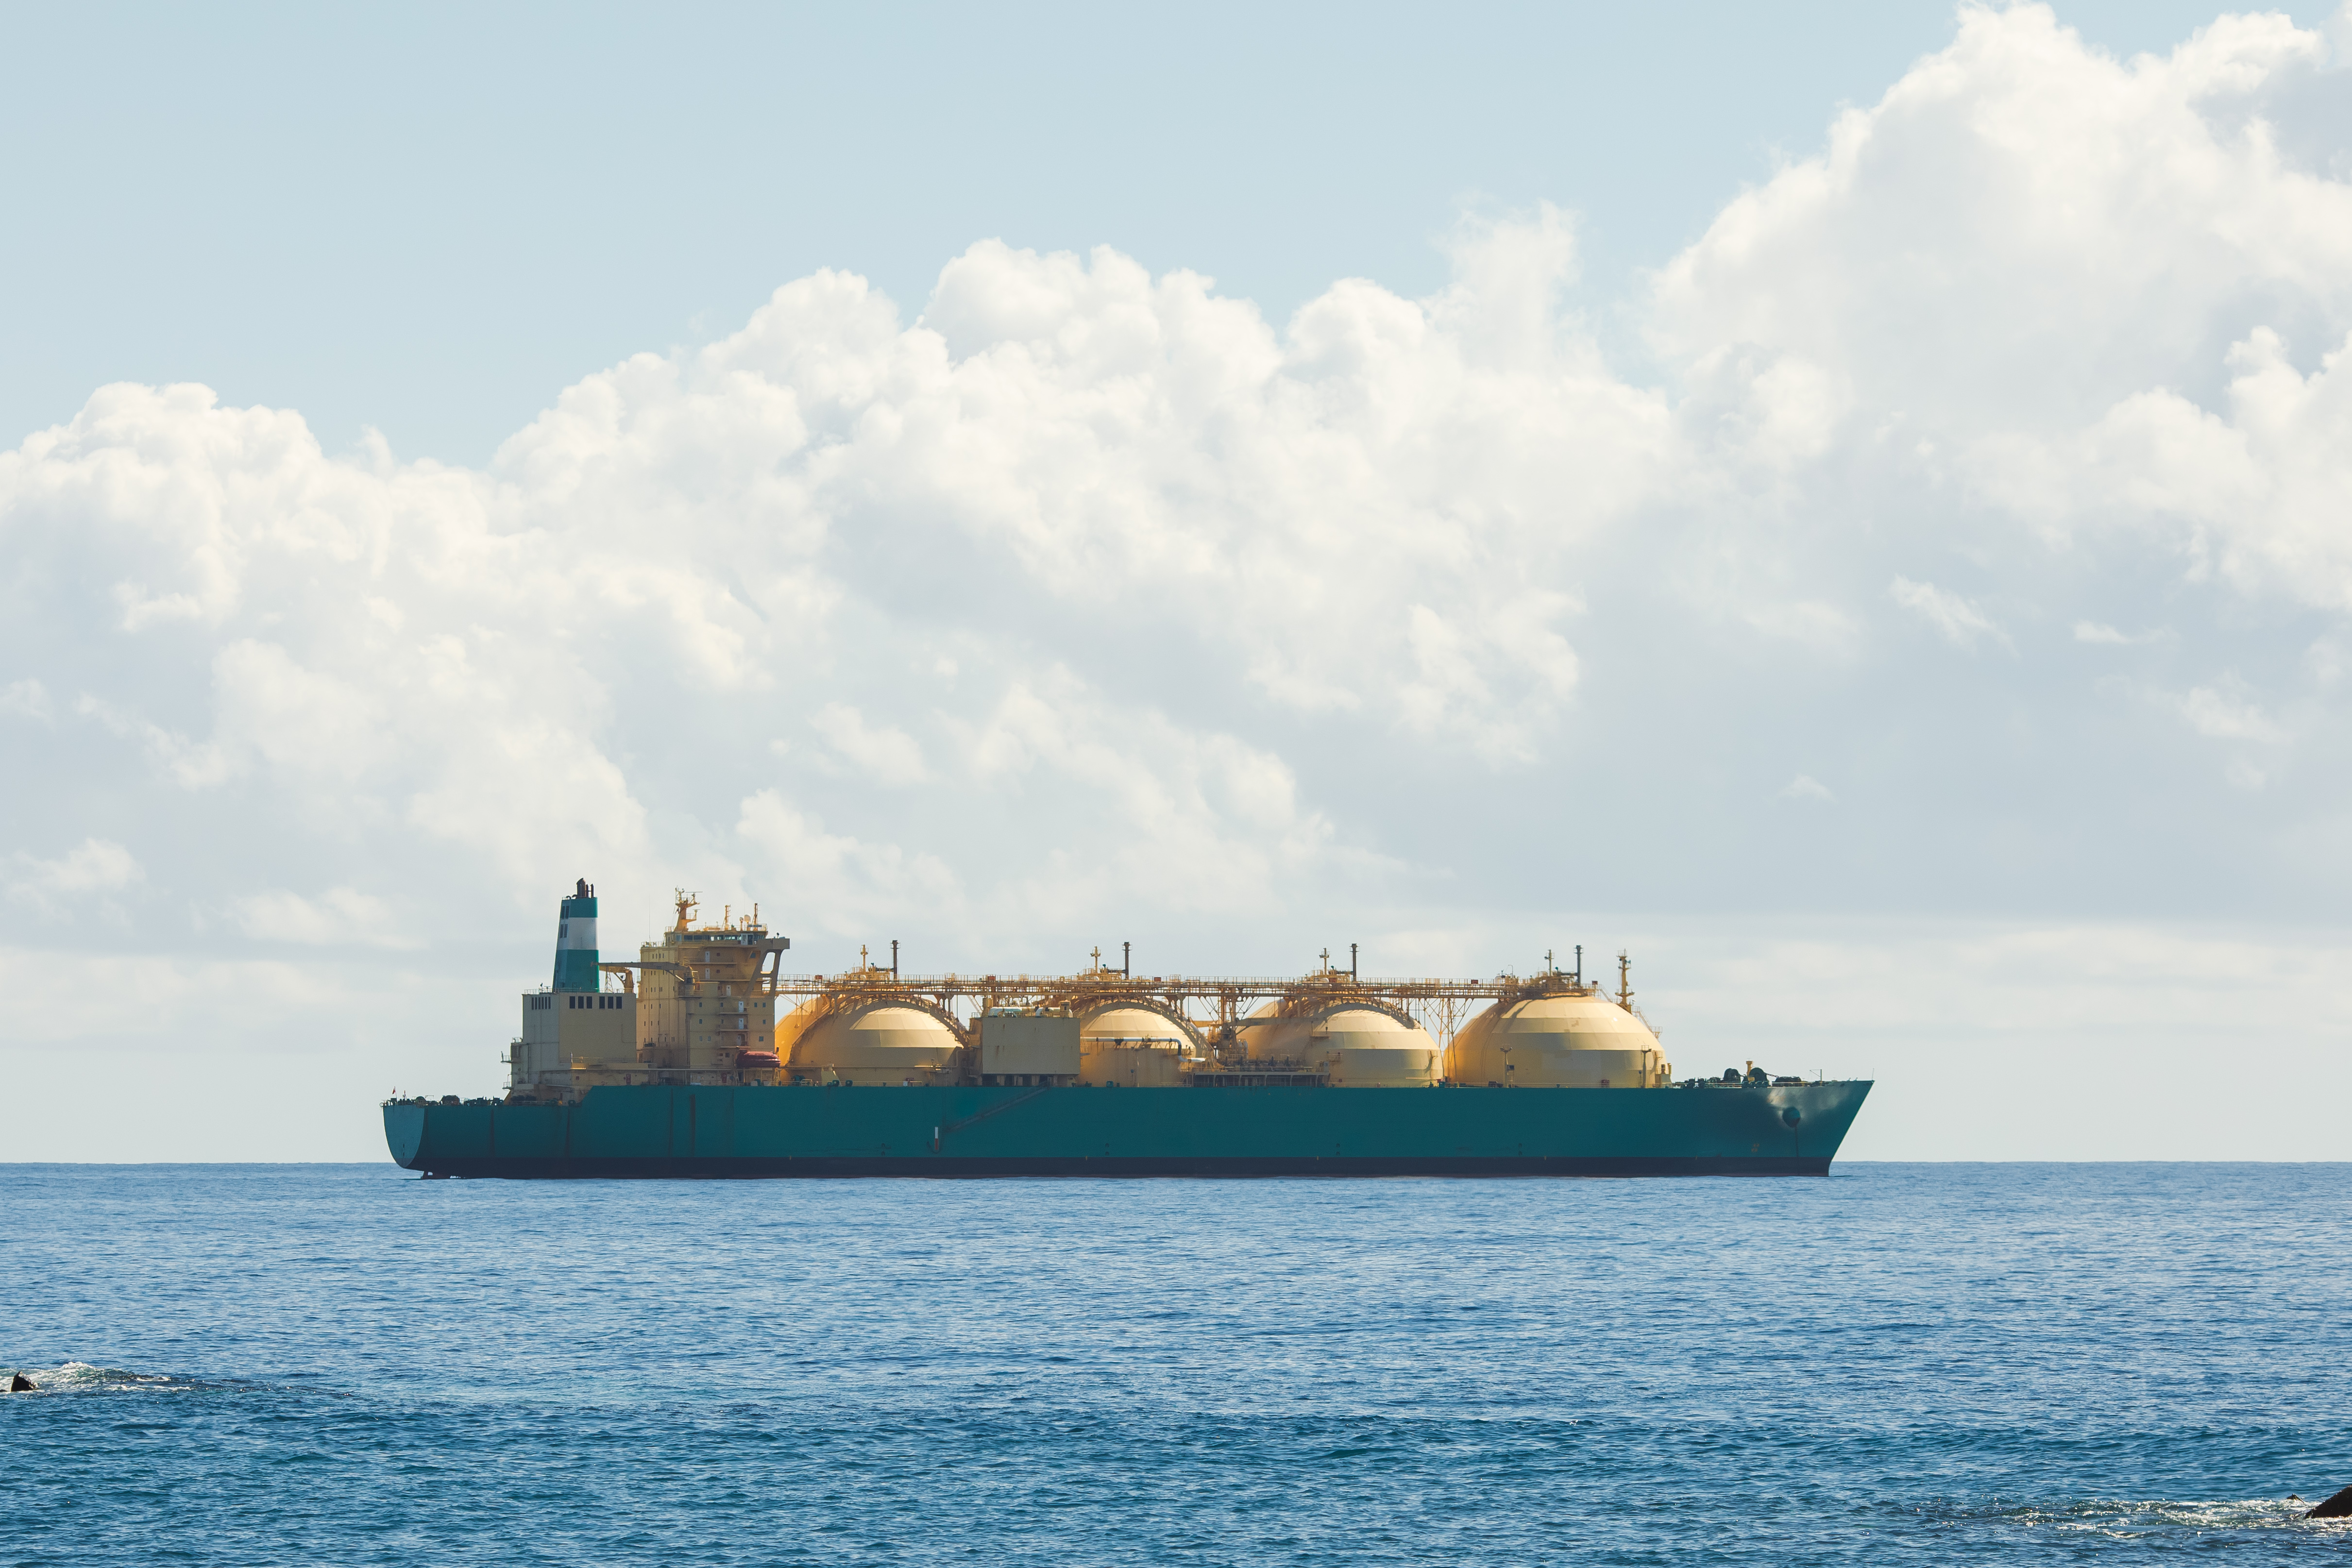 LNG carrier at sea